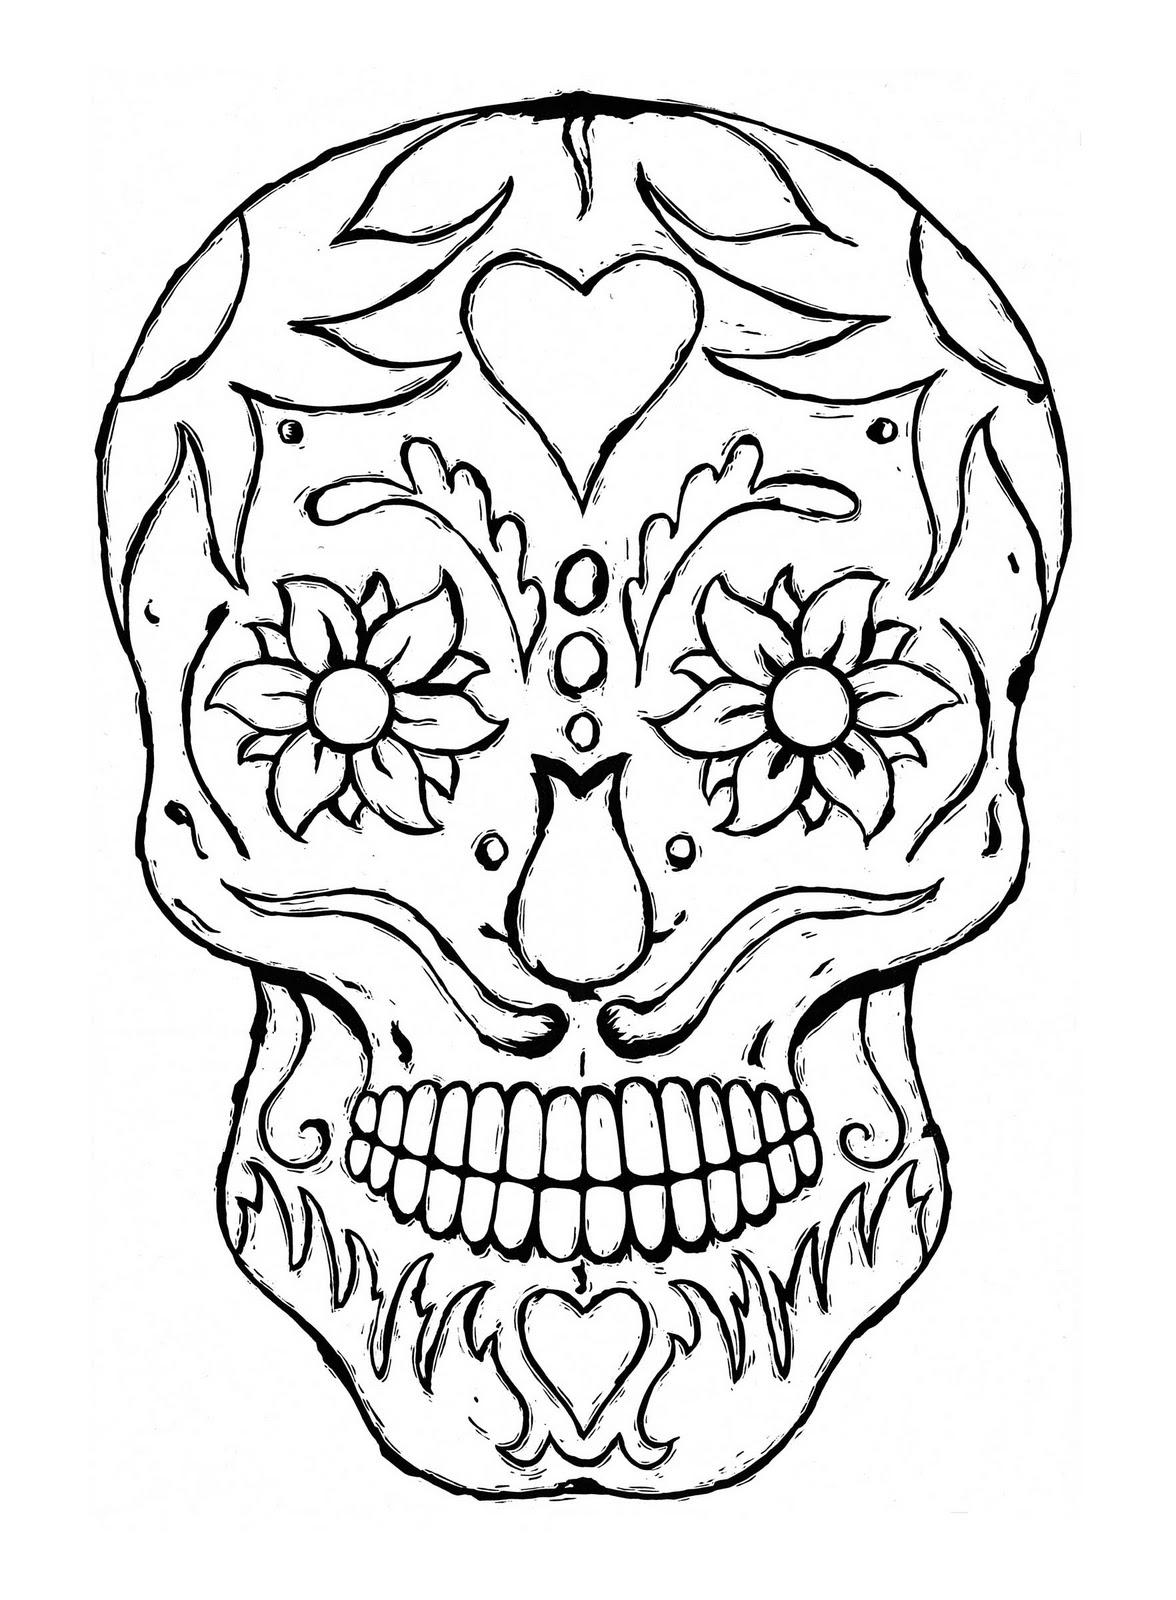 Found This Sugar Skull Design Online